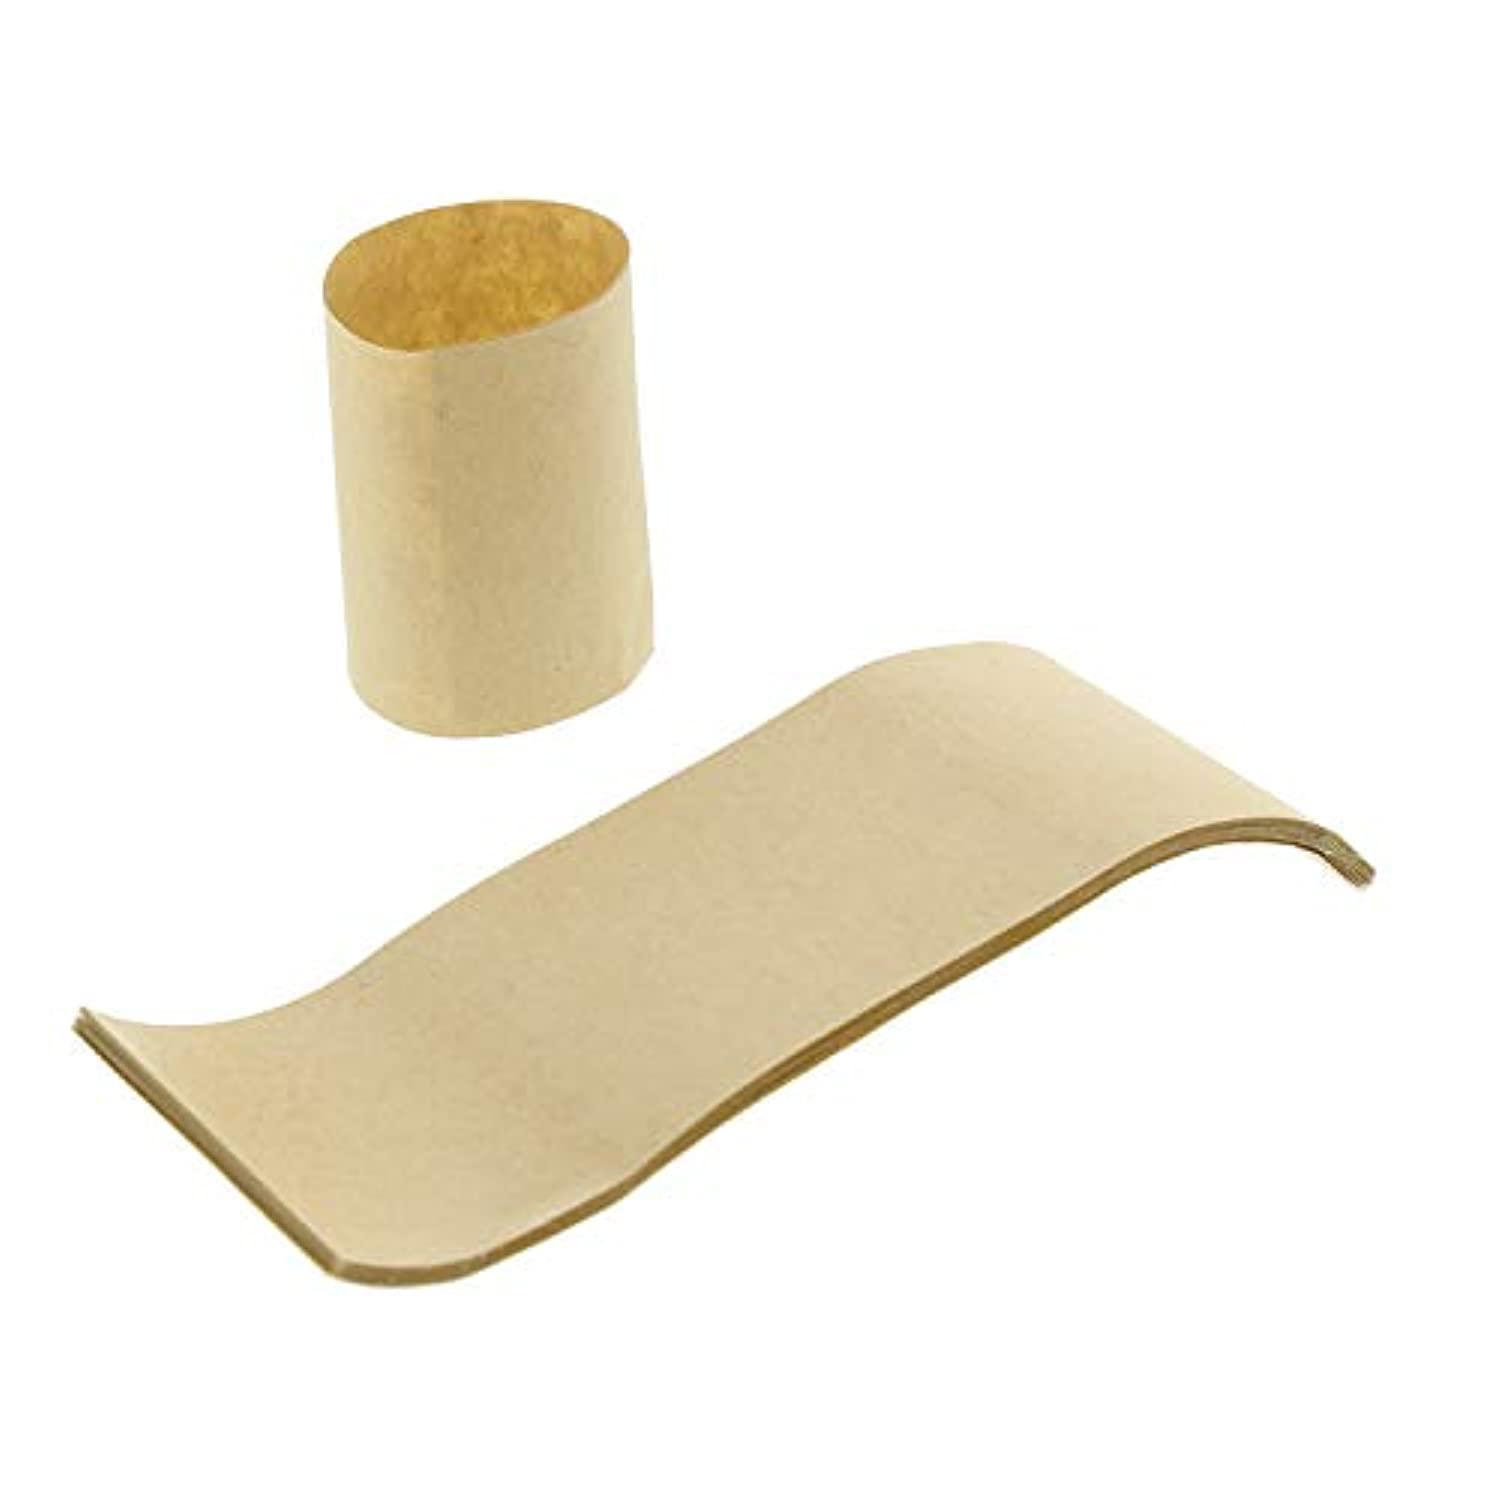 Royal Kraft Paper Napkin Bands, with Self-Sealing Glue, Package of 2000